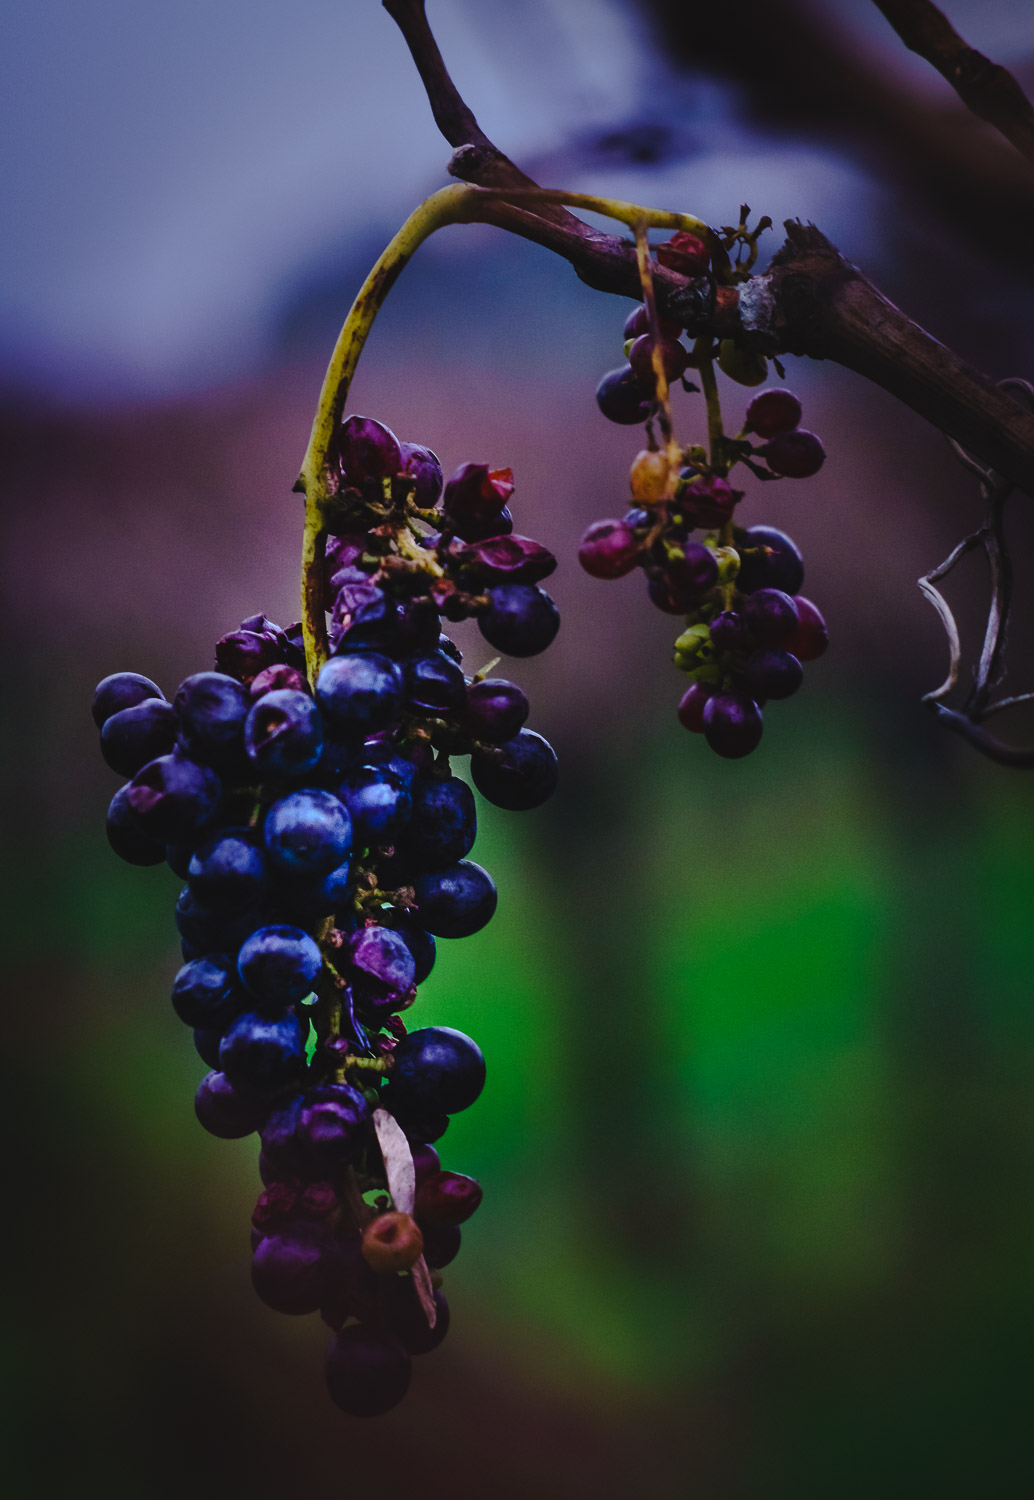 Grapes in season, South Australia wine country